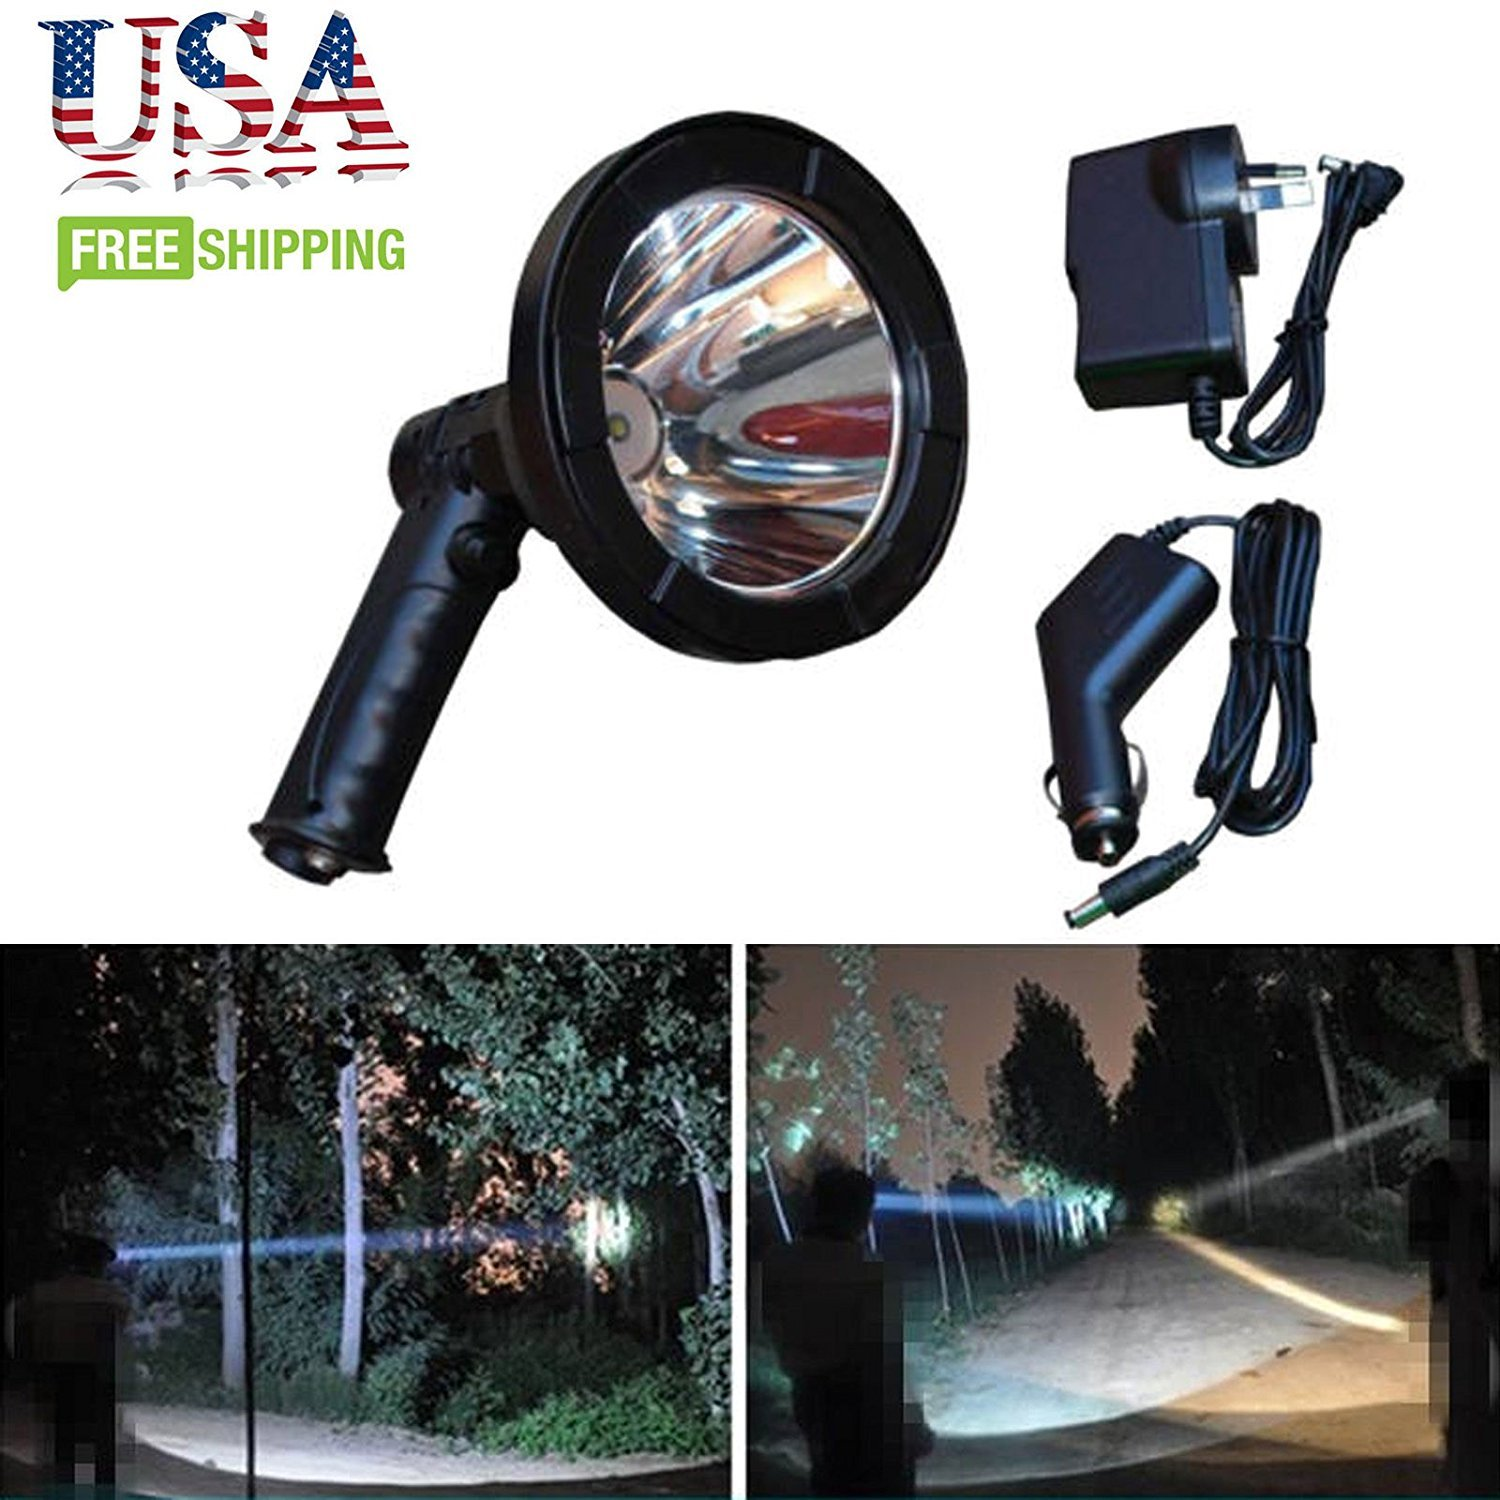 LED Hunting Spotlight Handheld Rechargeable T6 12V 5 Inch 2500 Lumen for Outdoor Home Farming Auto - 2 Year Warranty